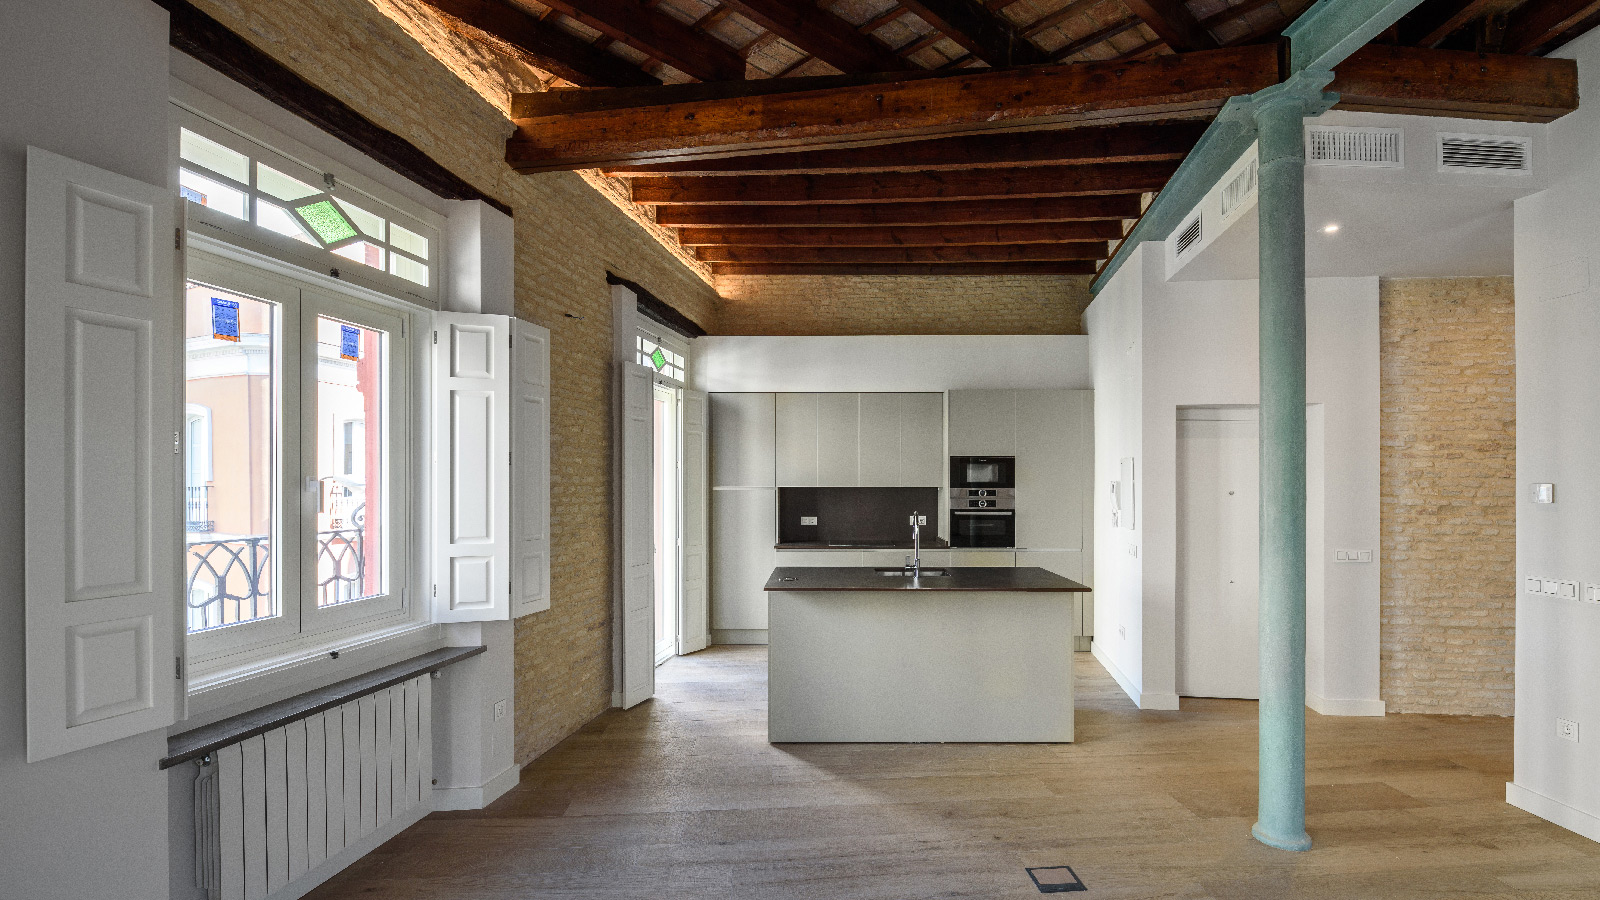 Porcelanosa Grupo Projects: two different styles in a house in Seville